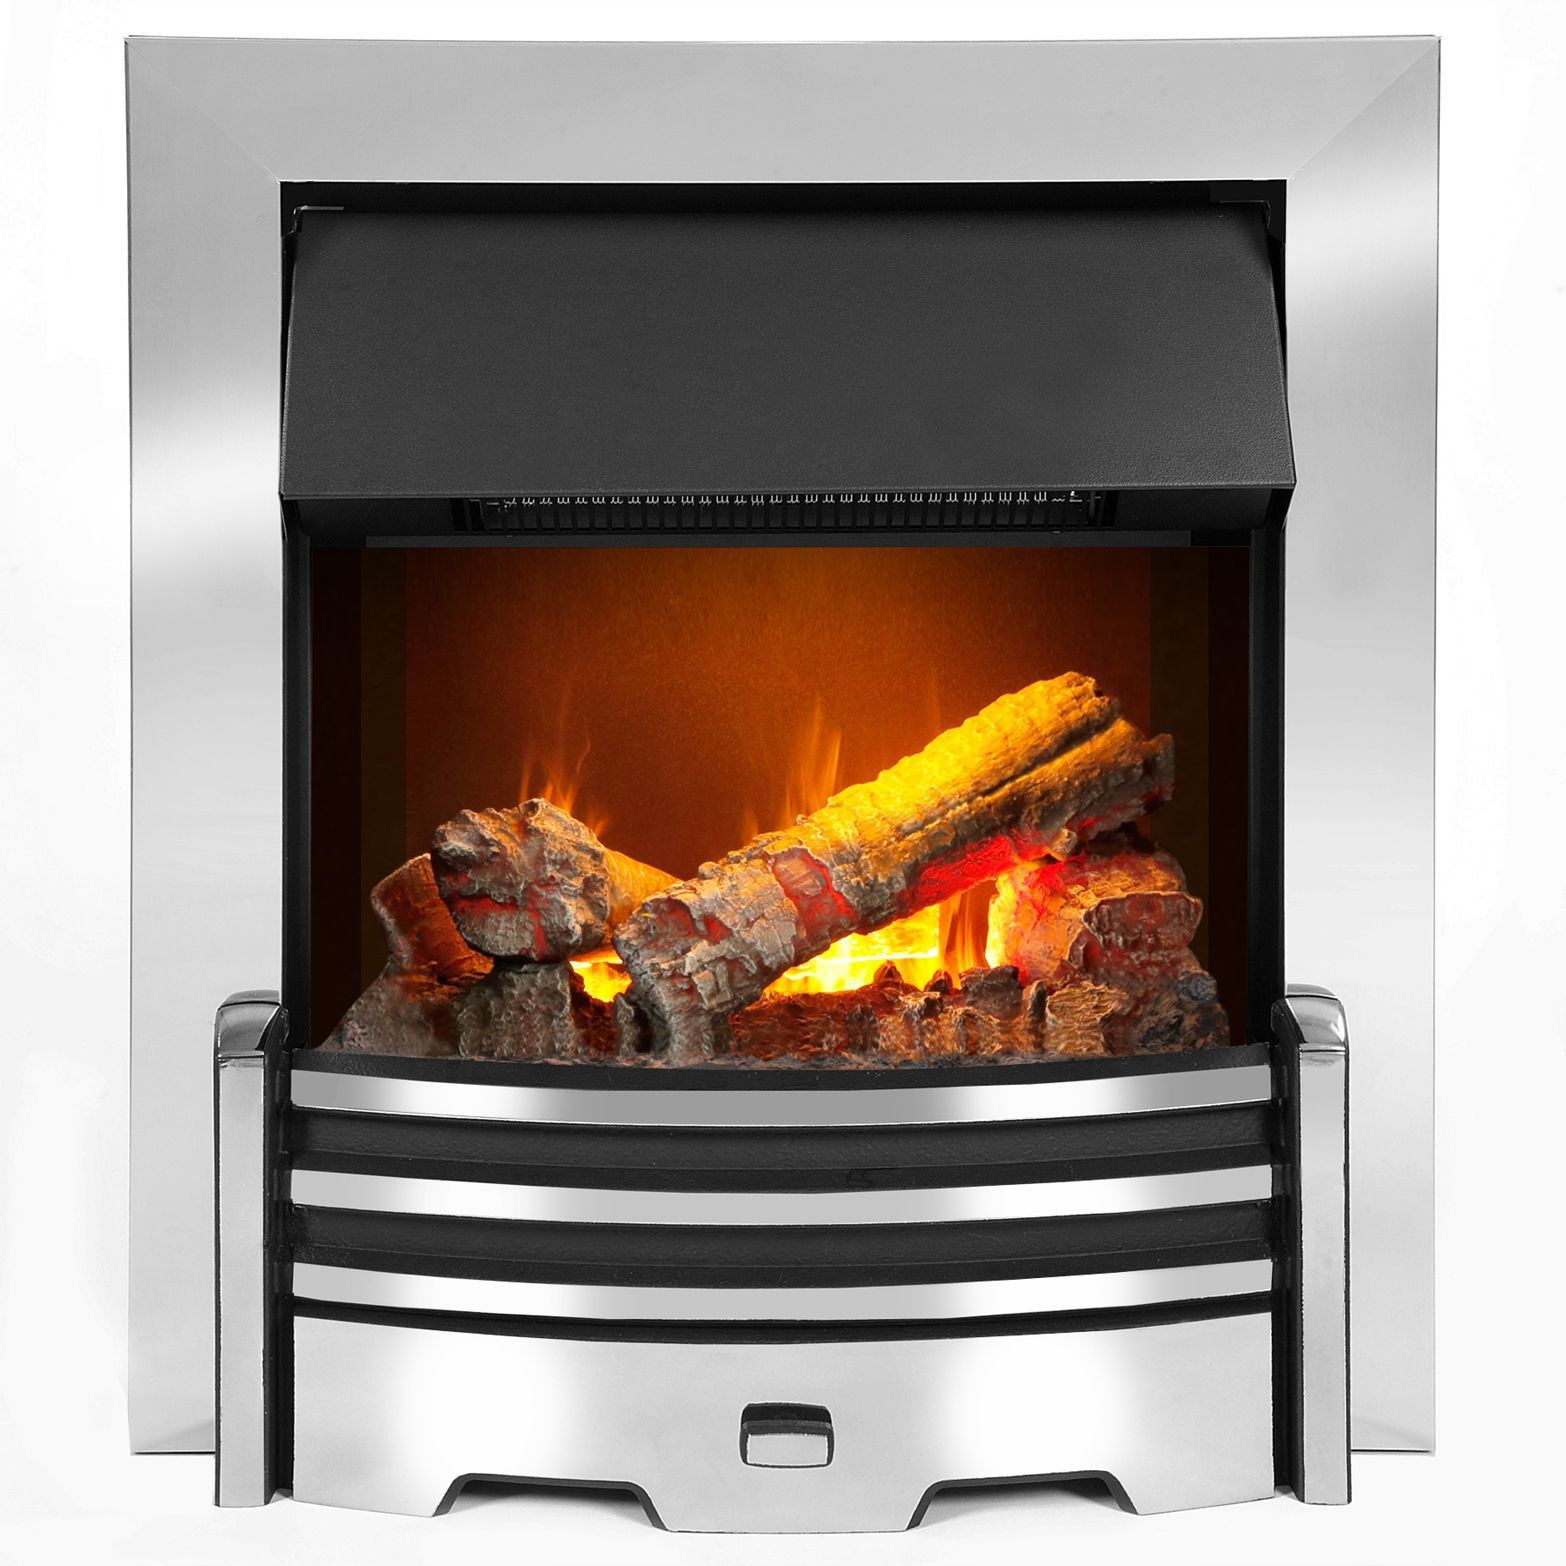 plant fireplace images tower duisburg cooling structure station vapor earth pollution chemistry flare electricity gas atmosphere protection smoke voltage current power water free en outdoor cloud industry energy photo environmental cumulus high of chimney factory